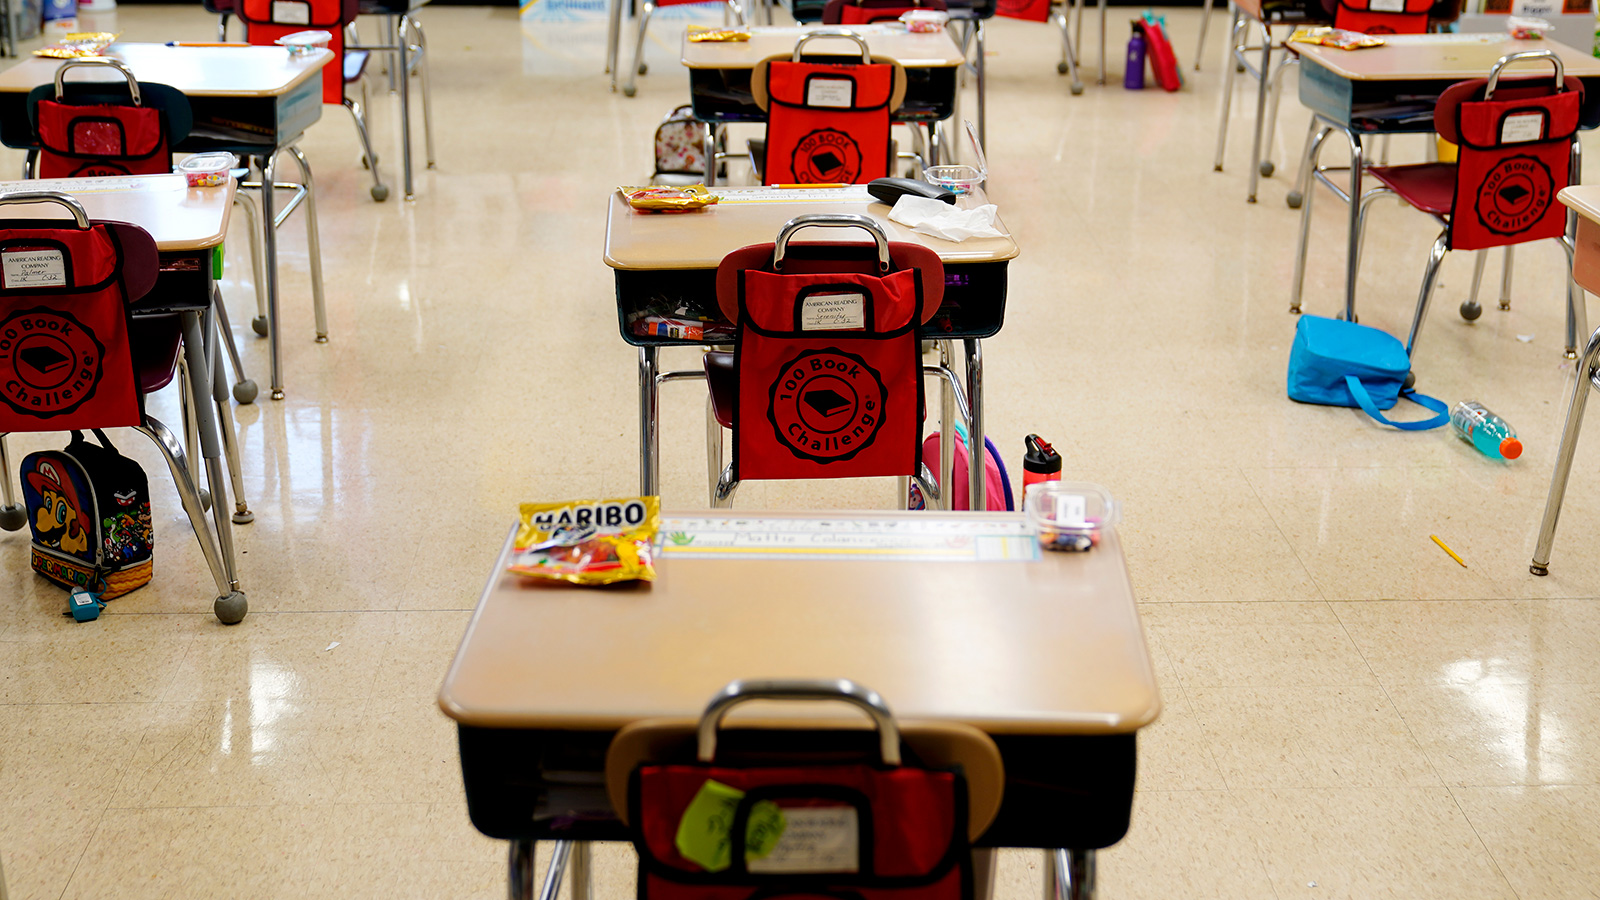 On this Thursday, March 11, 2021, desks are being arranged in a classroom at an elementary school in Nesquehoning, Pennsylvania.